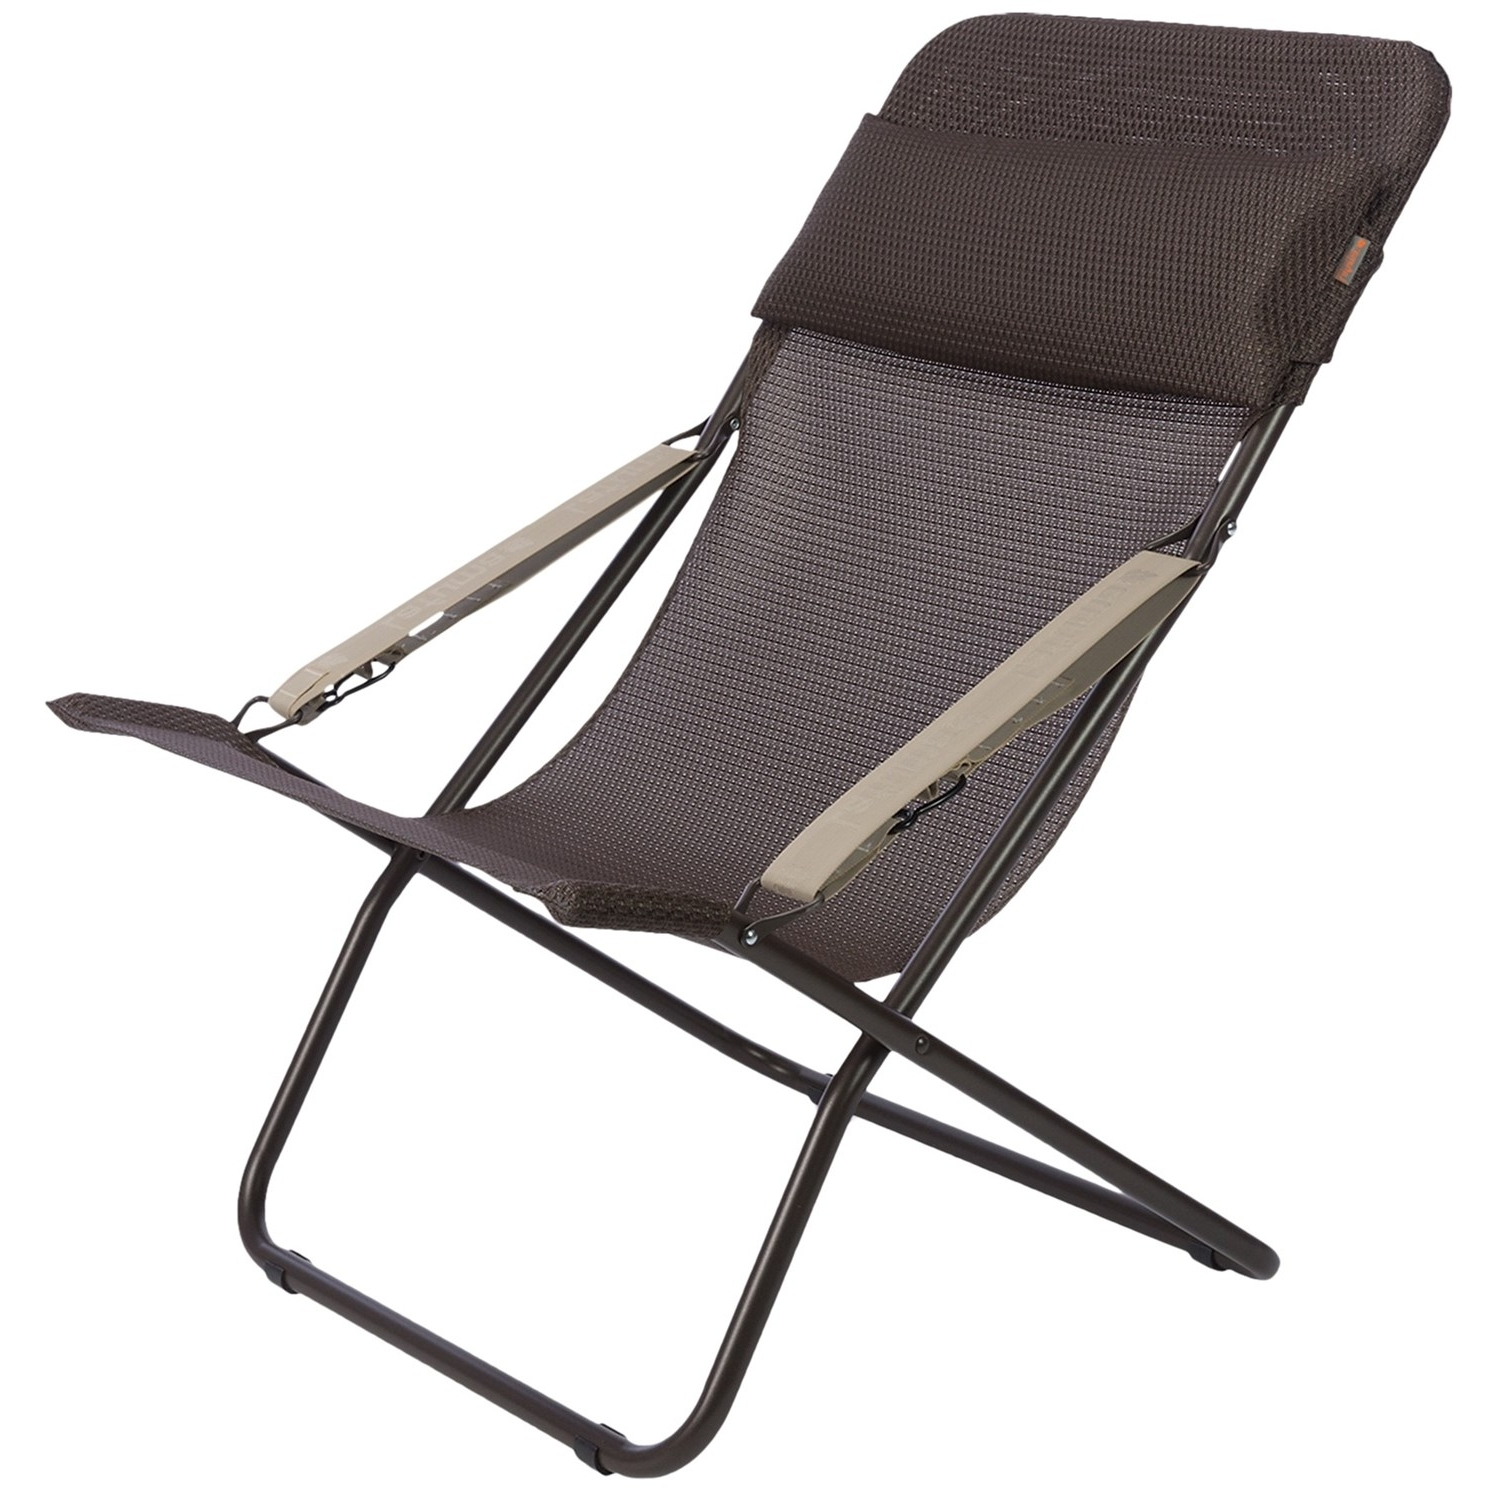 Lounge Chair : Folding Lawn Chairs Sturdy Outdoor Chaise Lounge Intended For Best And Newest Heavy Duty Outdoor Chaise Lounge Chairs (View 3 of 15)